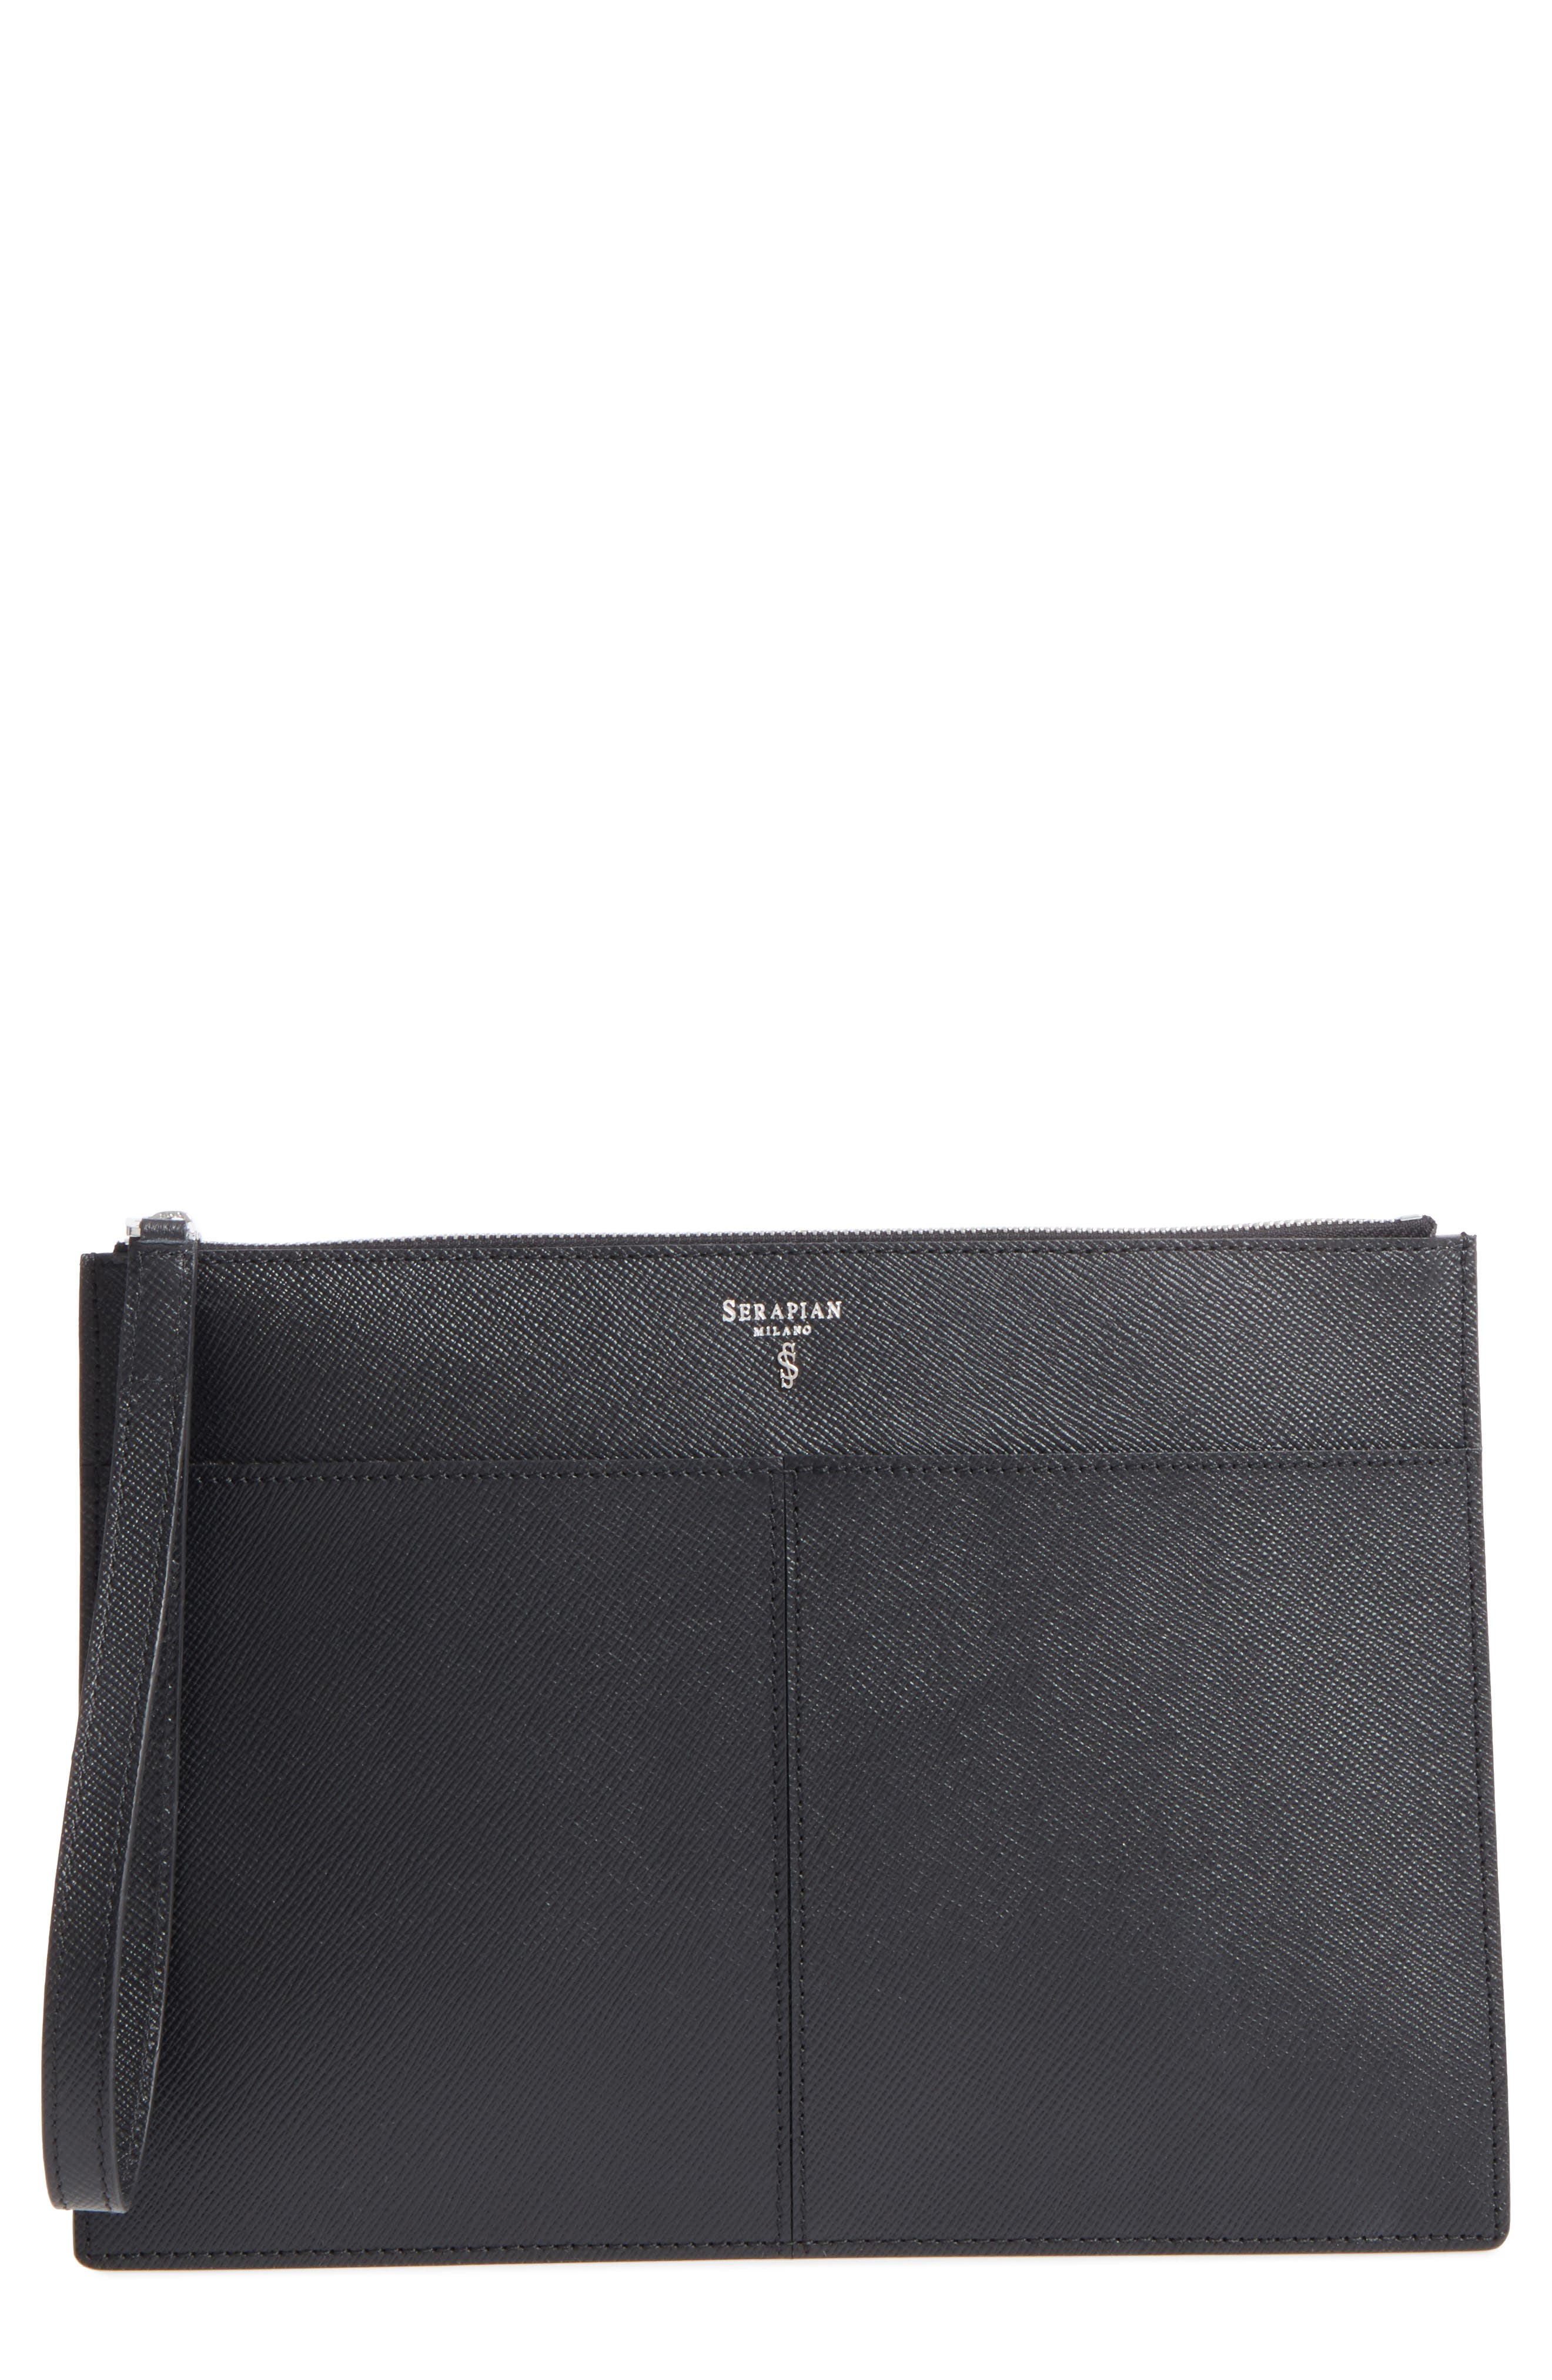 Evolution Leather Clutch,                         Main,                         color, 001